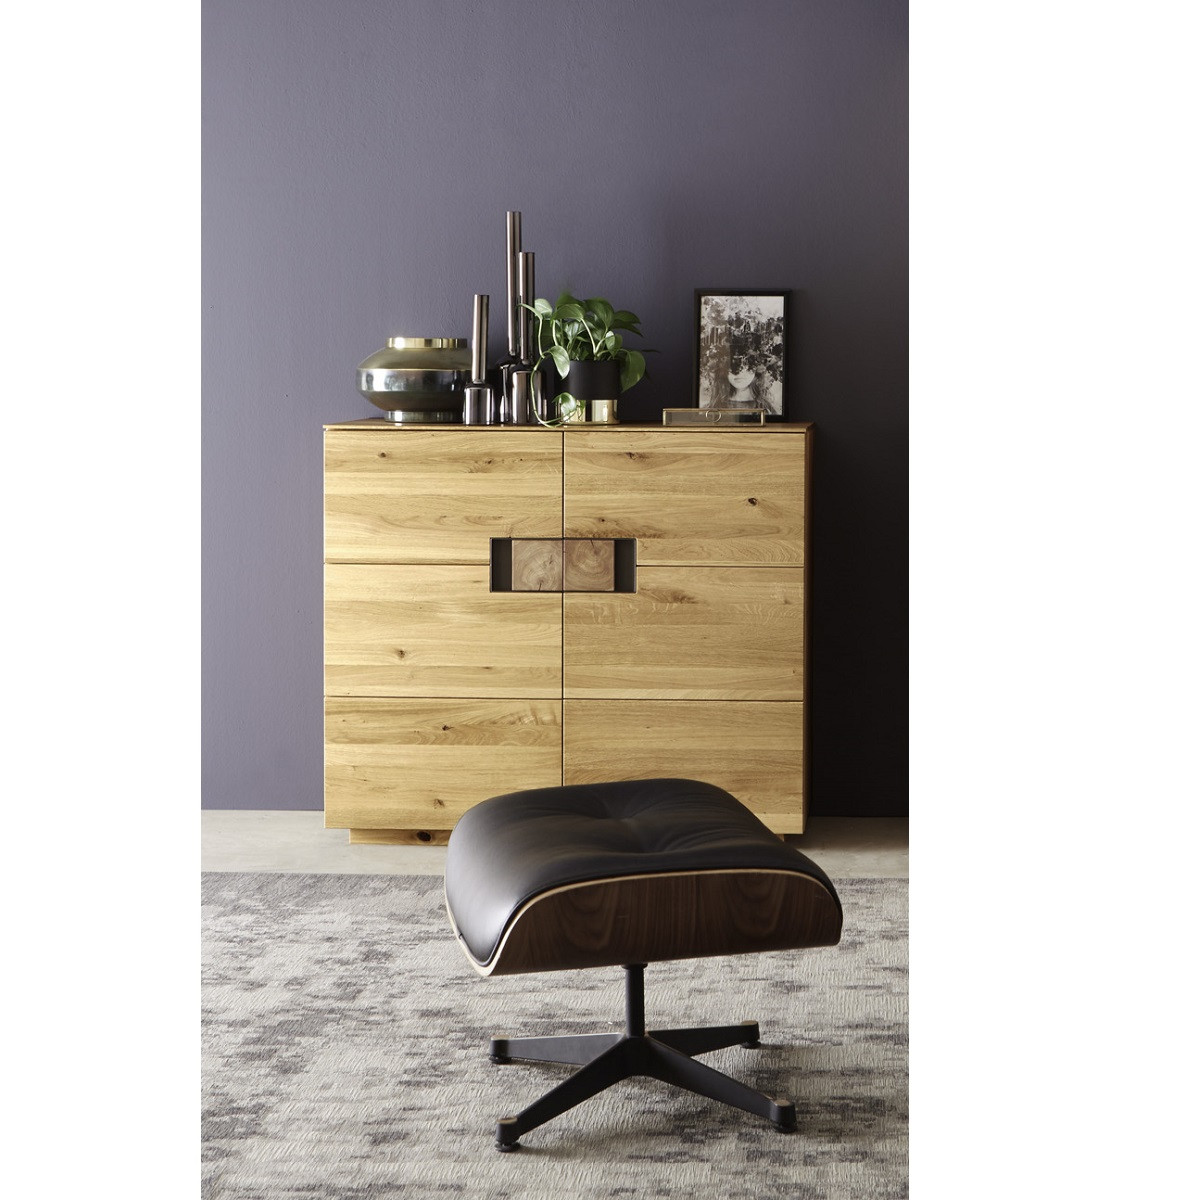 highboard-casaavanti-wöstmann-wildeiche-massiv-3150.jpg